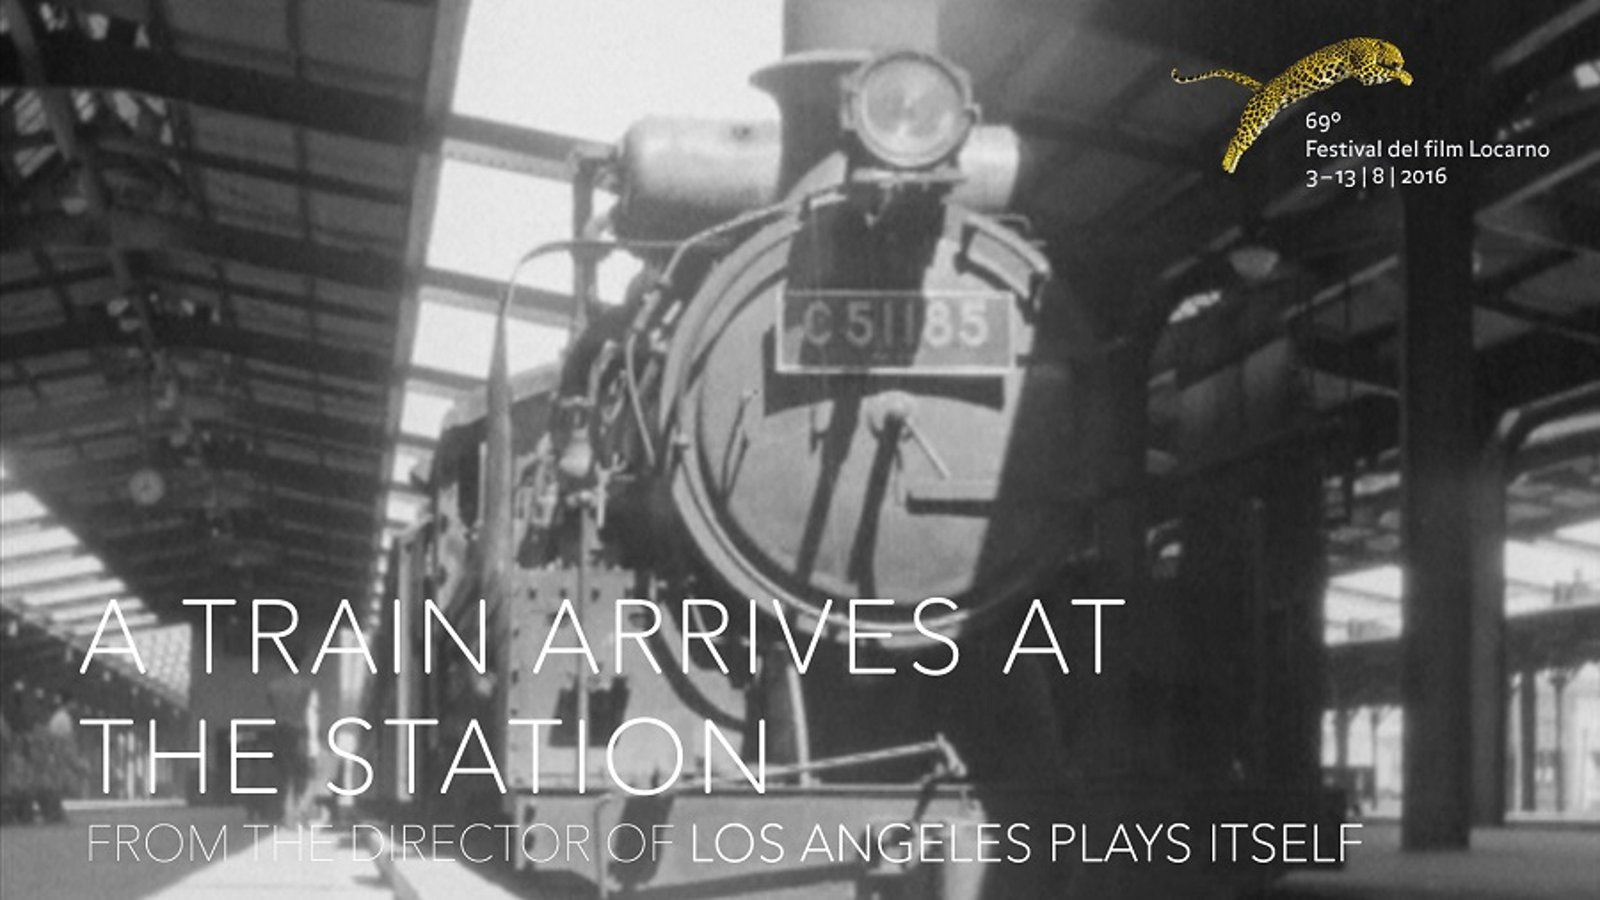 A Train Arrives at the Station - A Celebration of Film History's Most Famous Train Arrivals